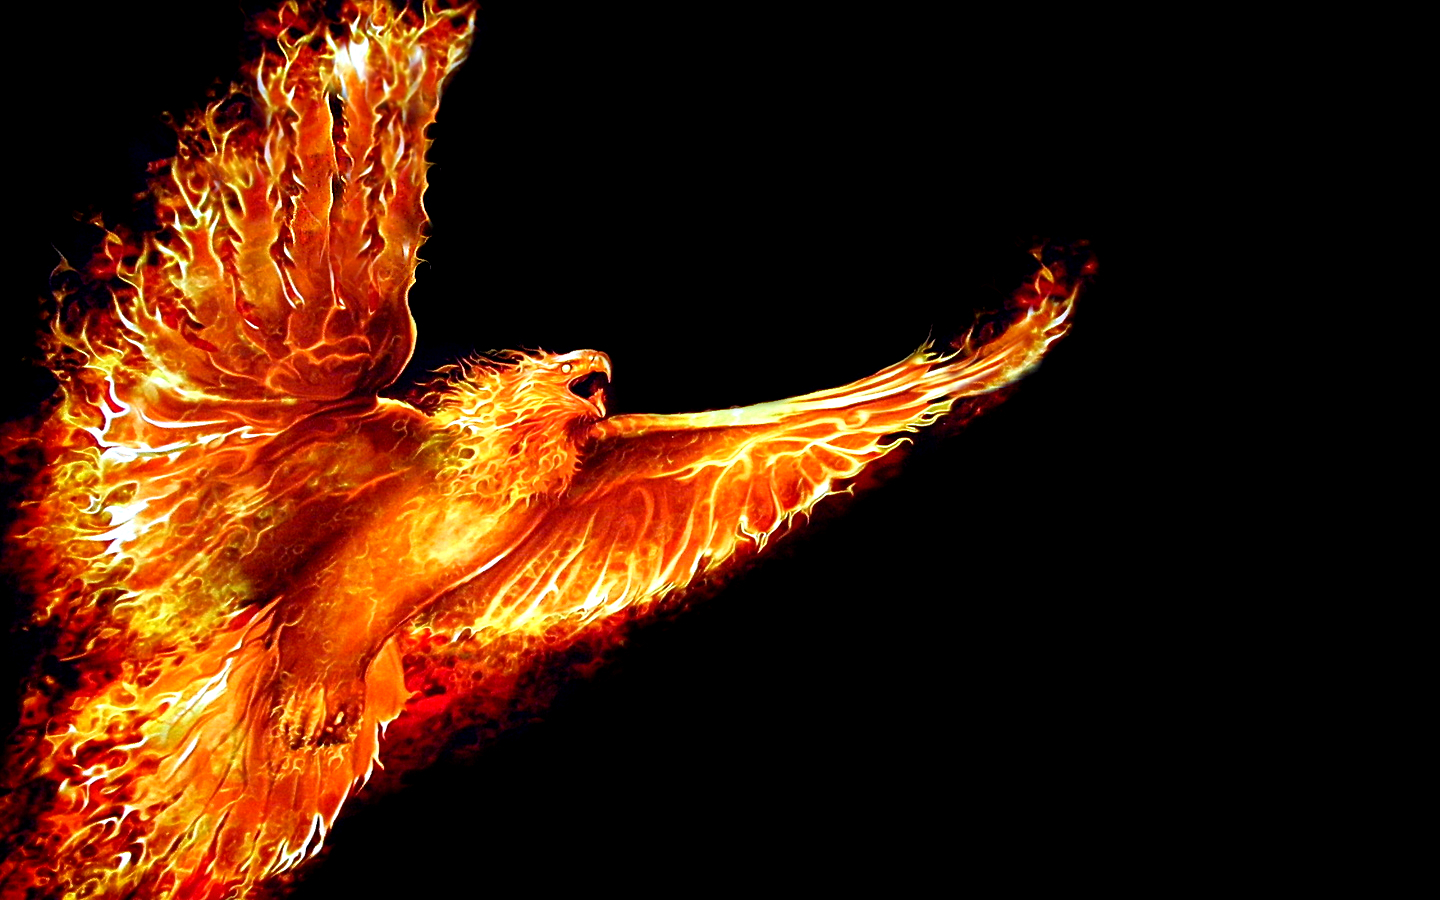 fire phoenix black background